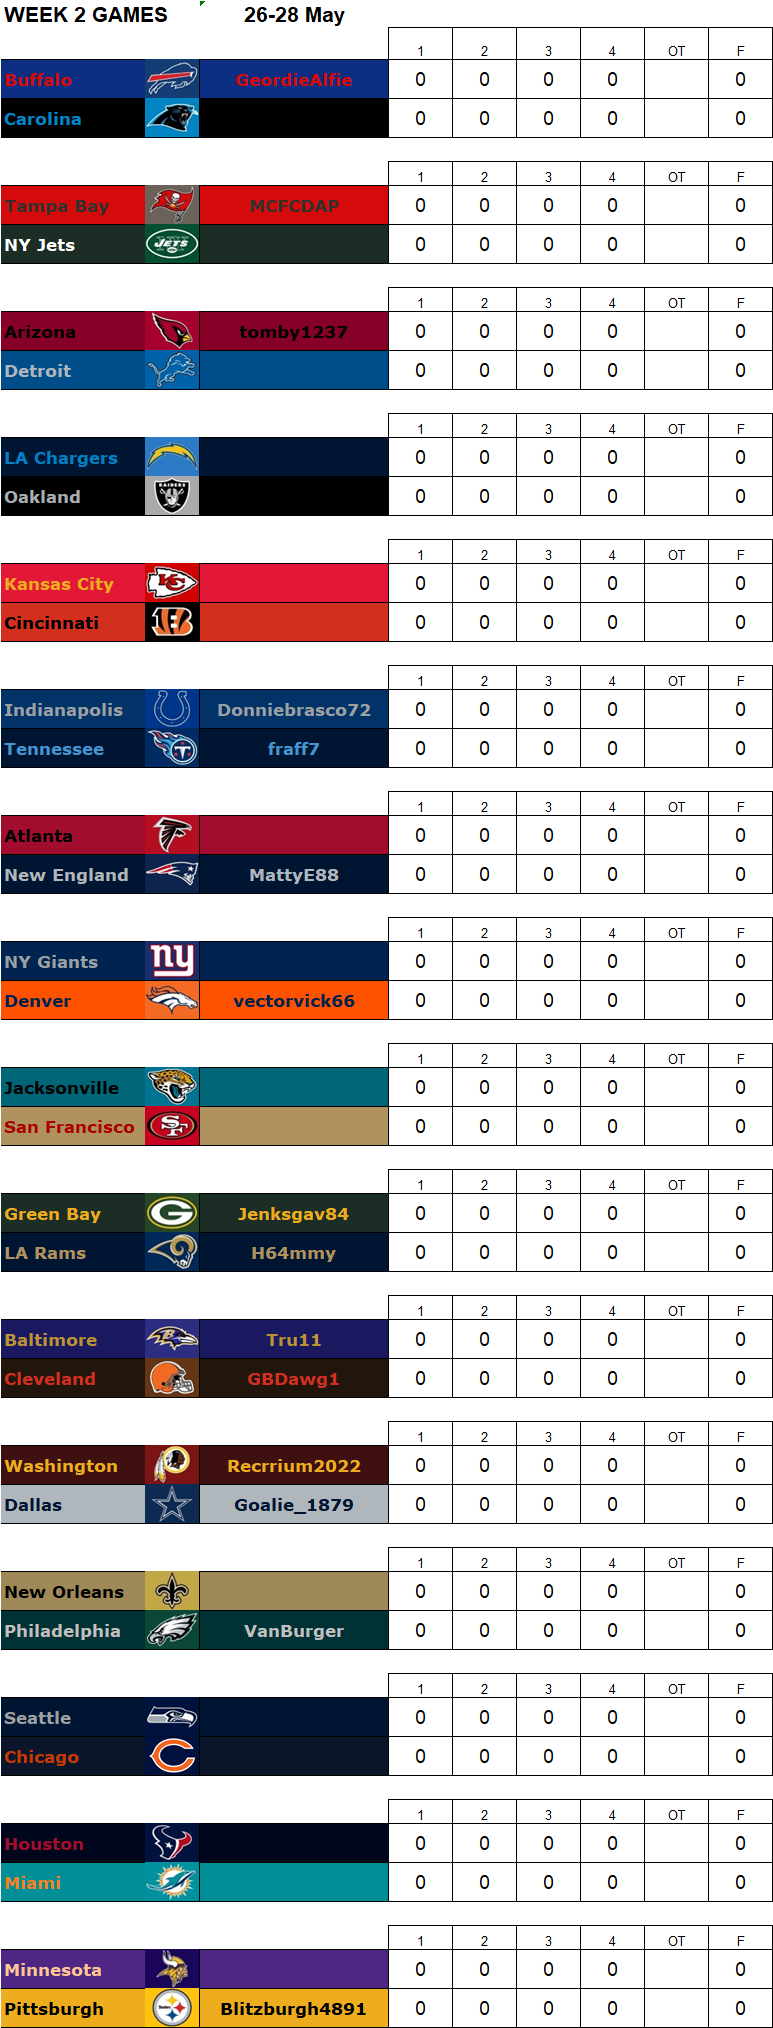 Week 2 Regular Season Matchups, 26-28 May W2g15